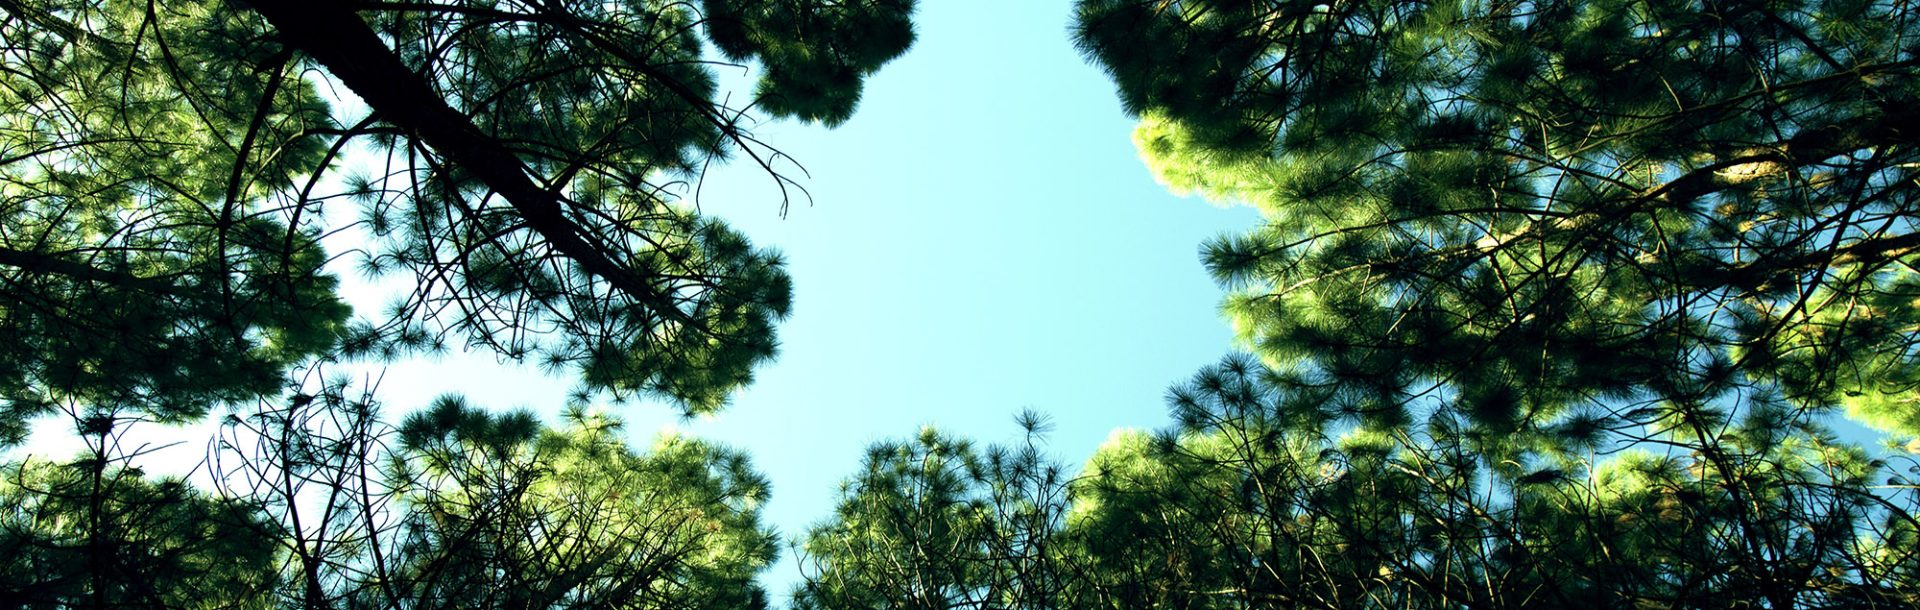 looking up to the sky through trees